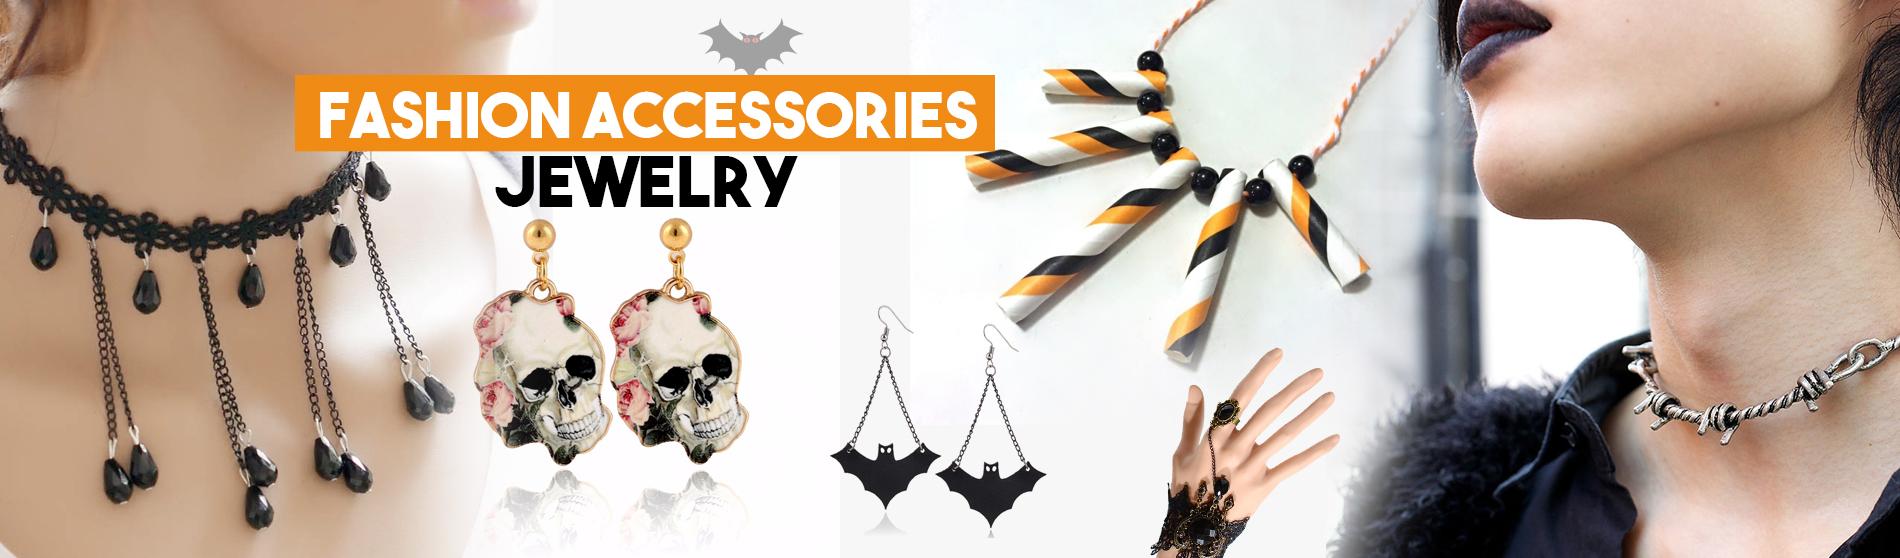 Fashion-Accessories-Jewelry